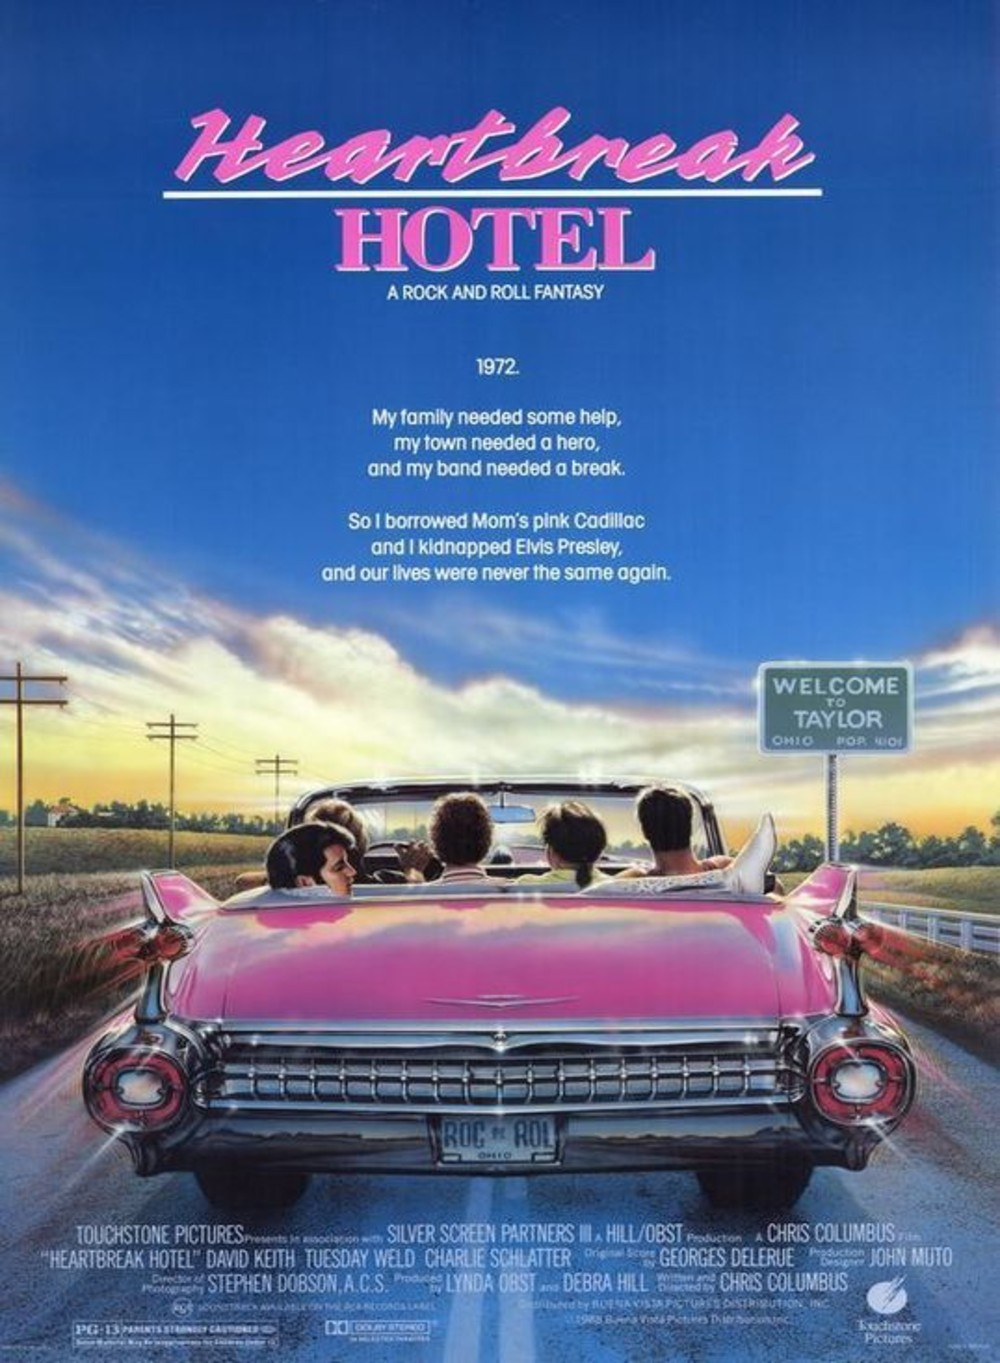 heartbreak hotel affiche poster disney touchstone Pictures